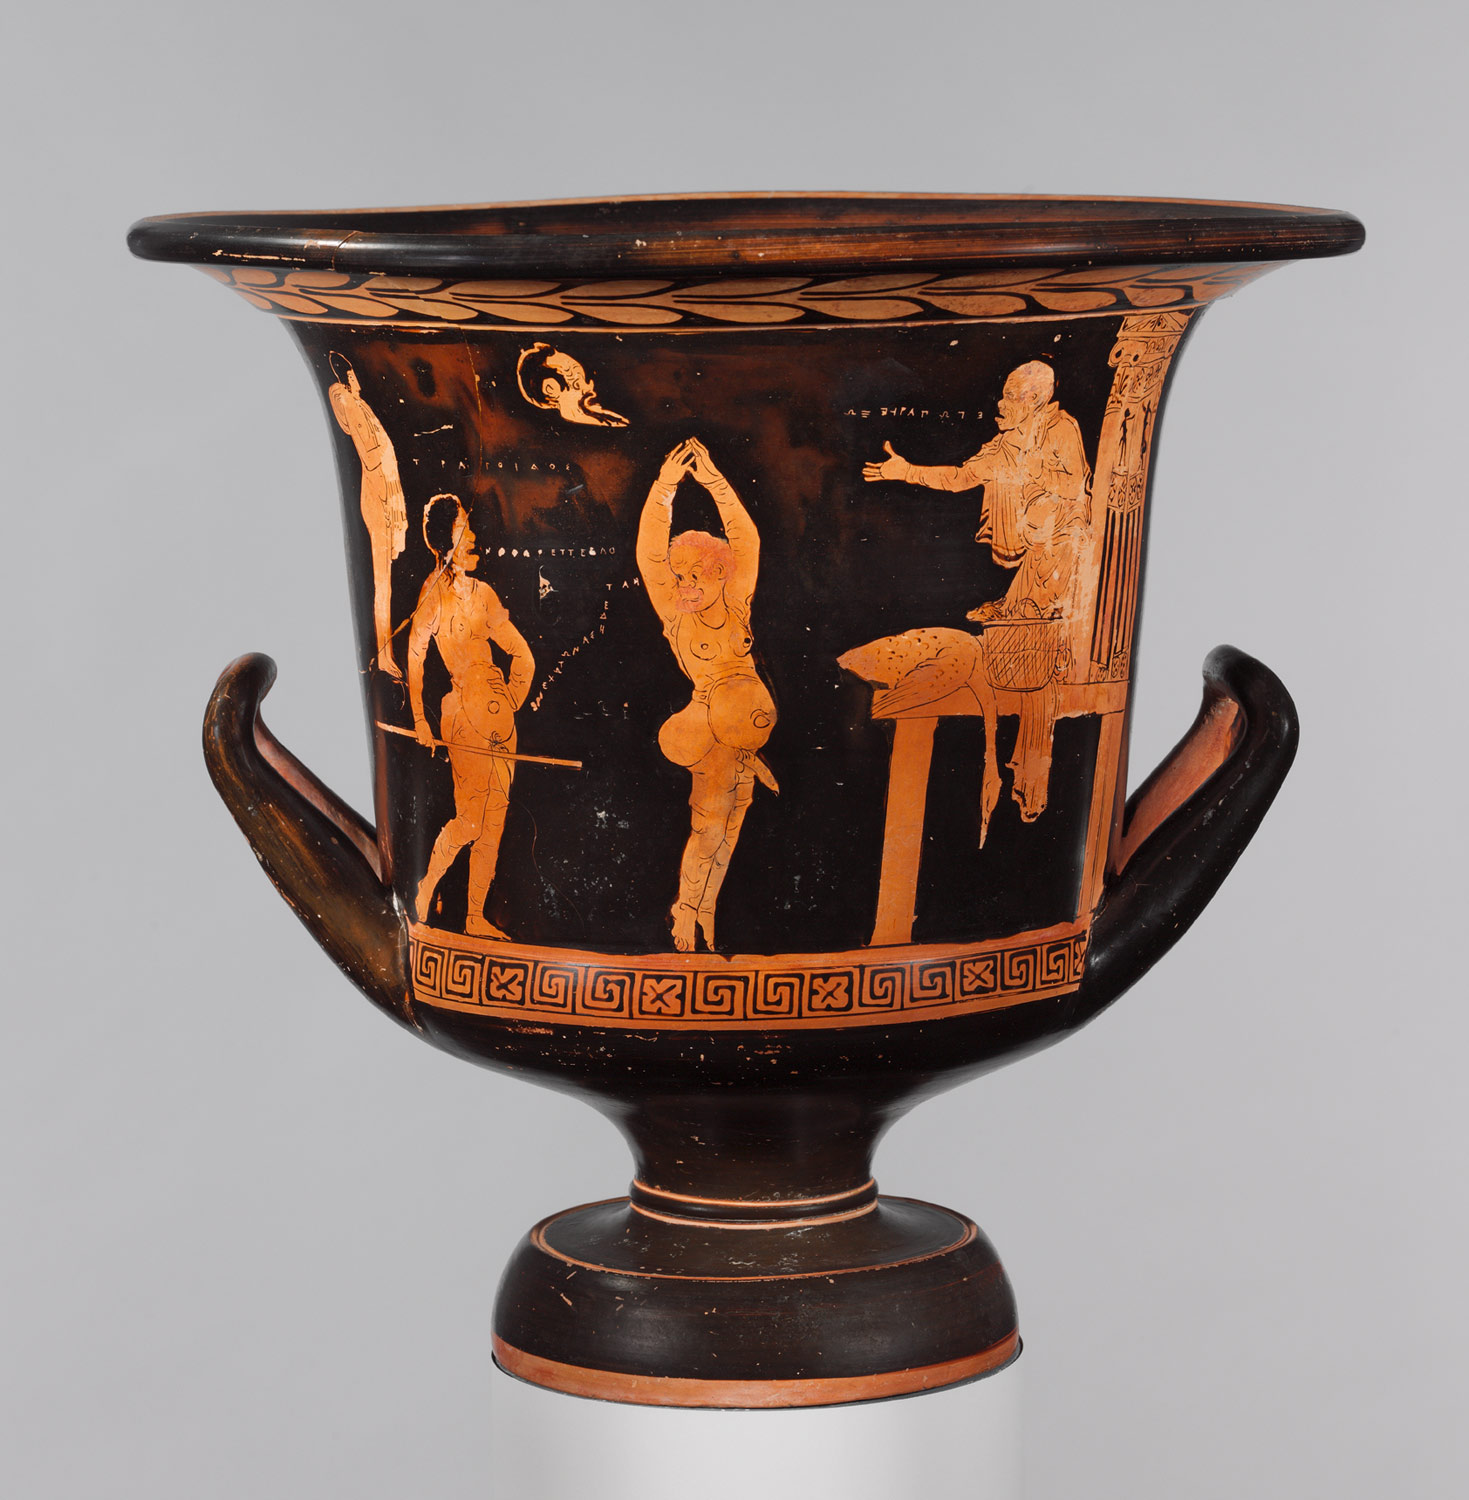 Terracotta calyx-krater (mixing bowl)